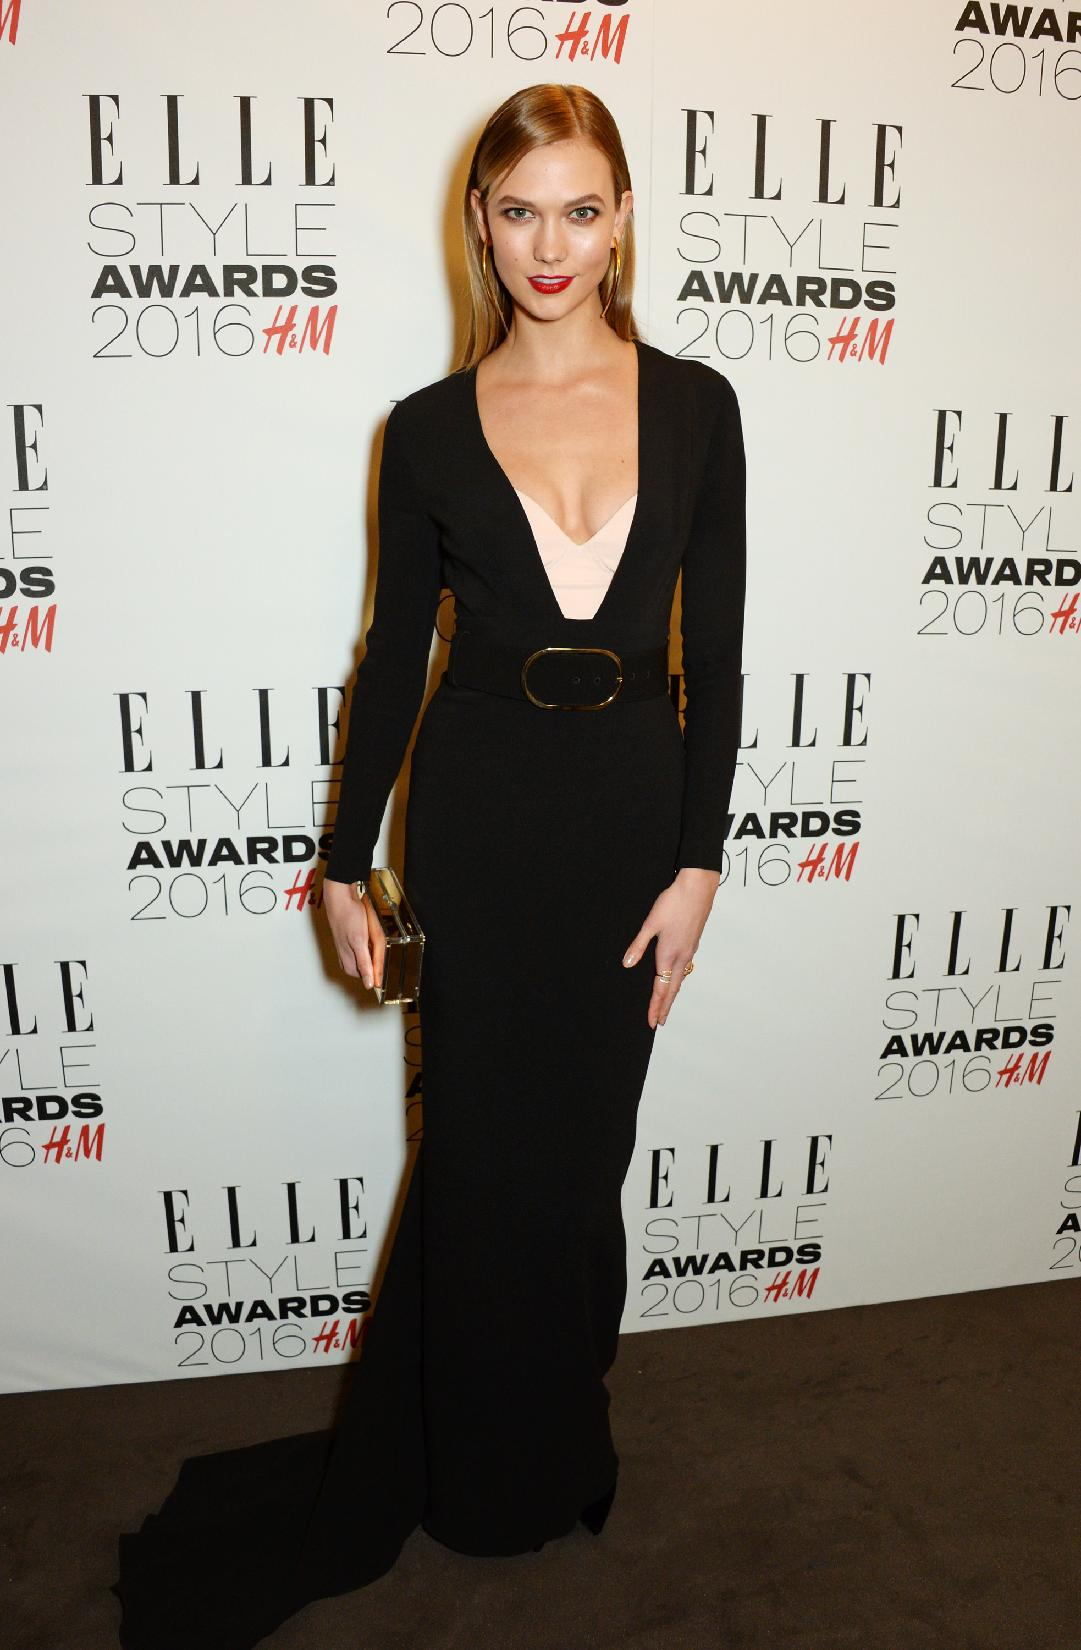 Our favourite looks from the ELLE Style Awards